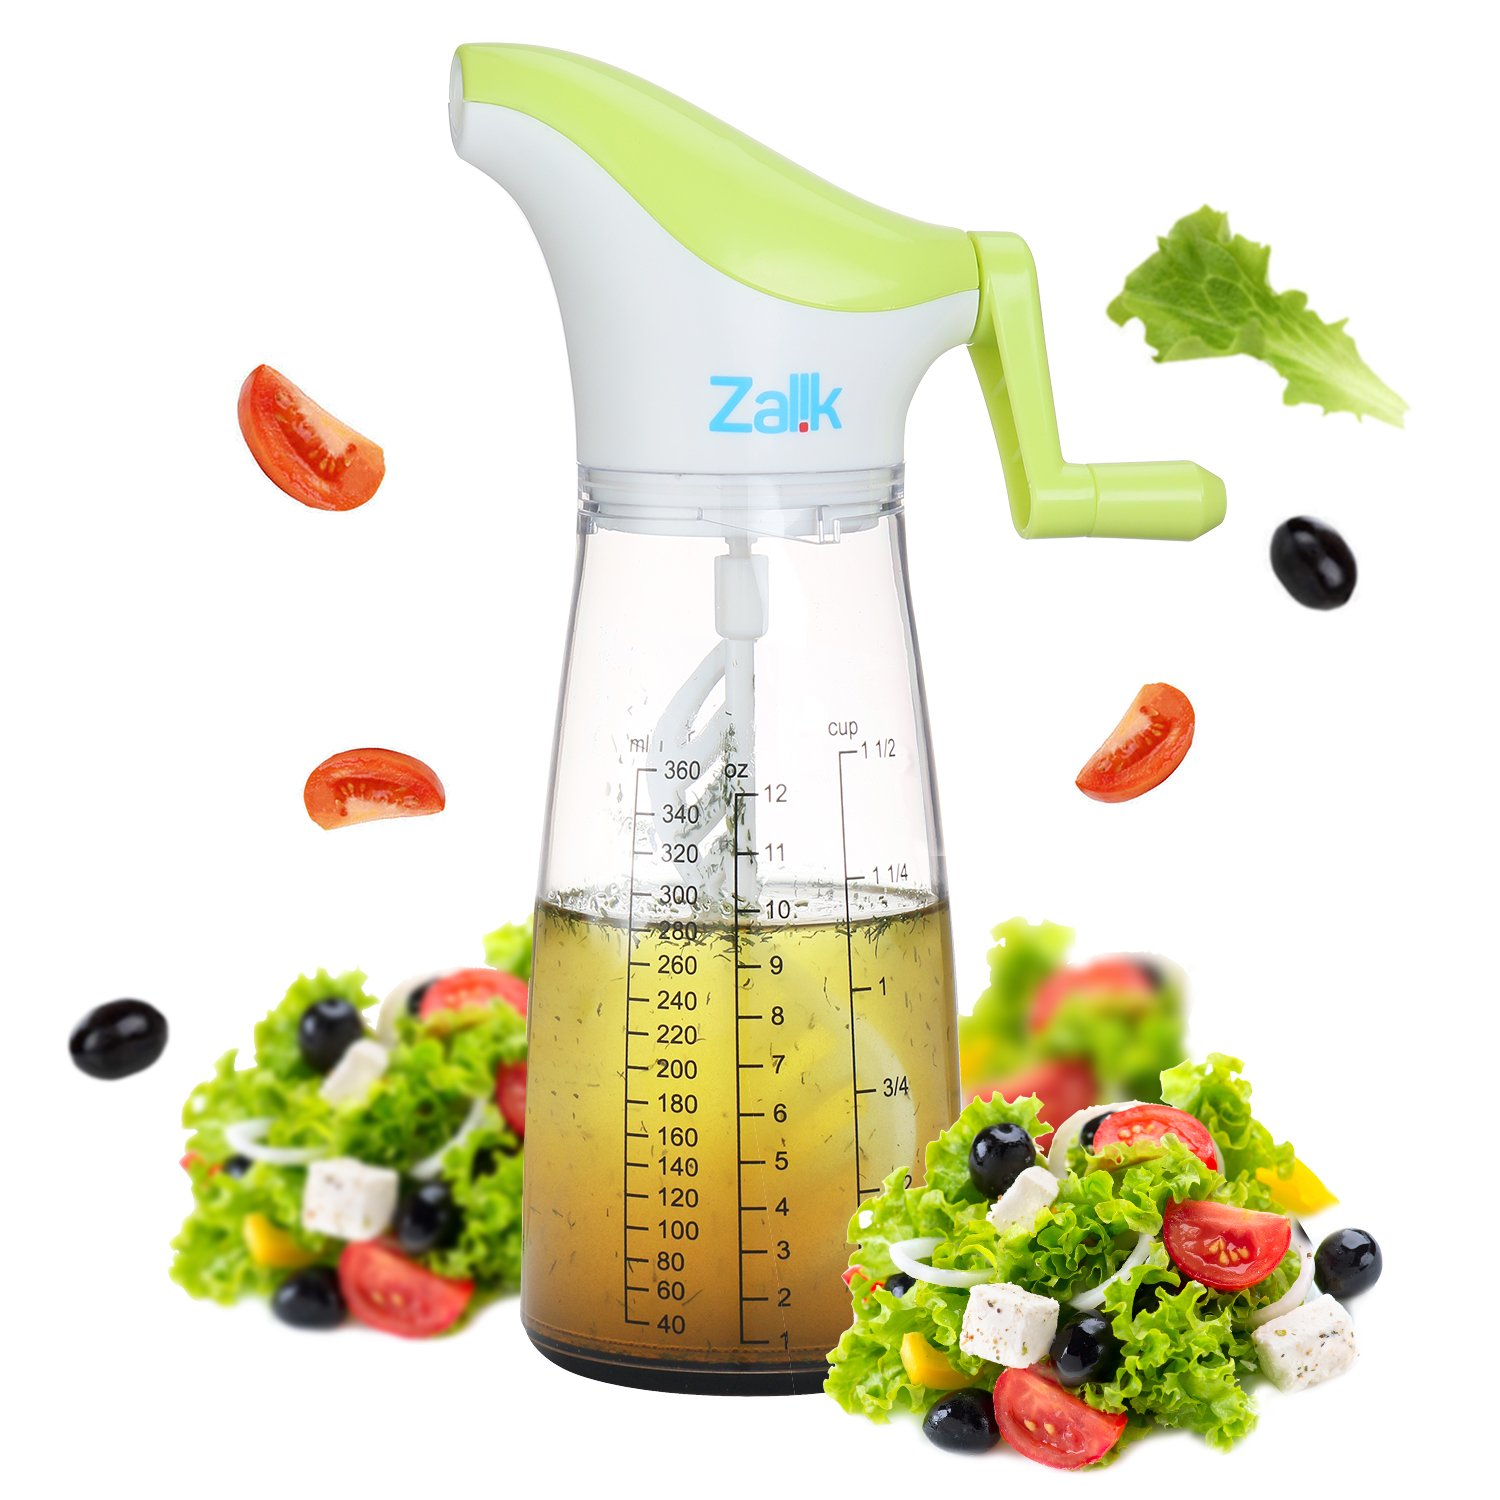 Salad Dressing Shaker Mixer Bottle Cup - 200% Better Mixing With Emulstir Blender - 400ml Heavy Duty Salad Maker with Pourer - Essential Kitchen Tool for Dressings Sauces Marinades & Dips - by Zalik